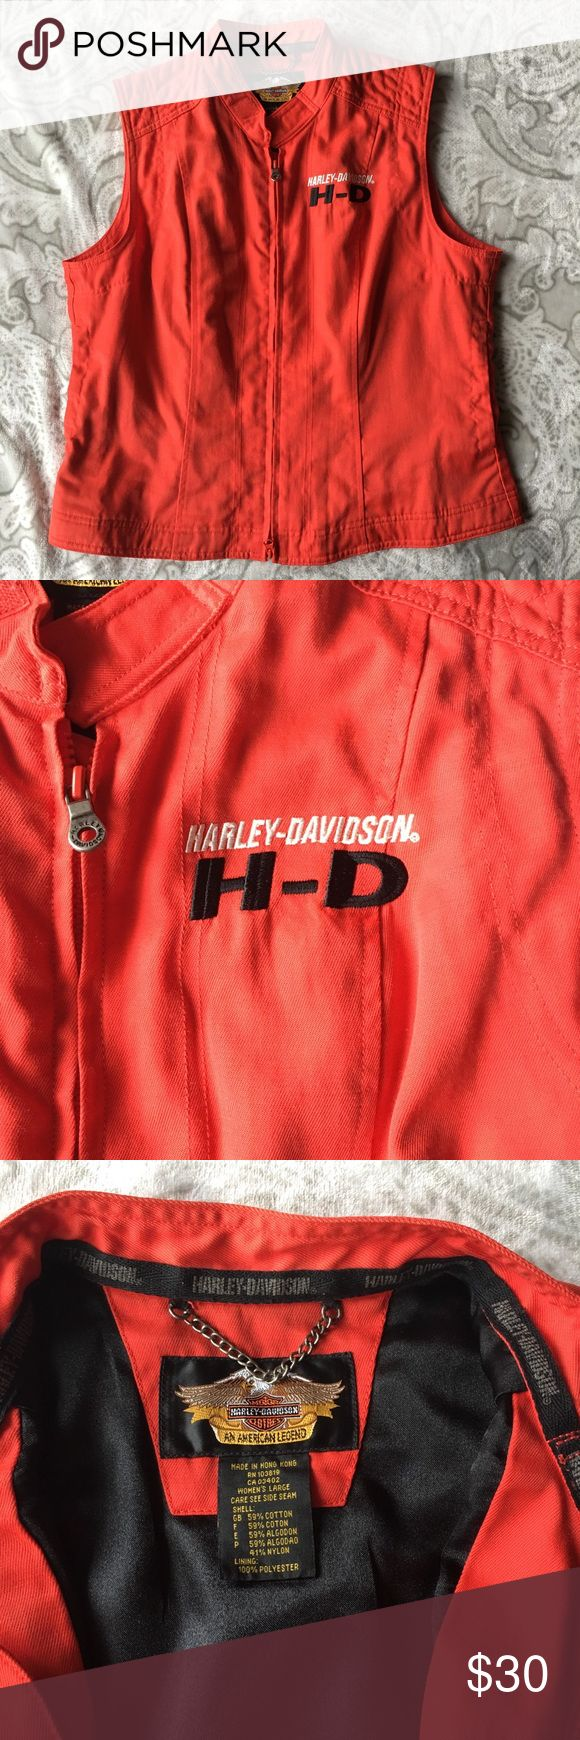 Harley Davidson vest Red riding vest with zipper. Like brand new. No holes or stains. Harley-Davidson Jackets & Coats Vests